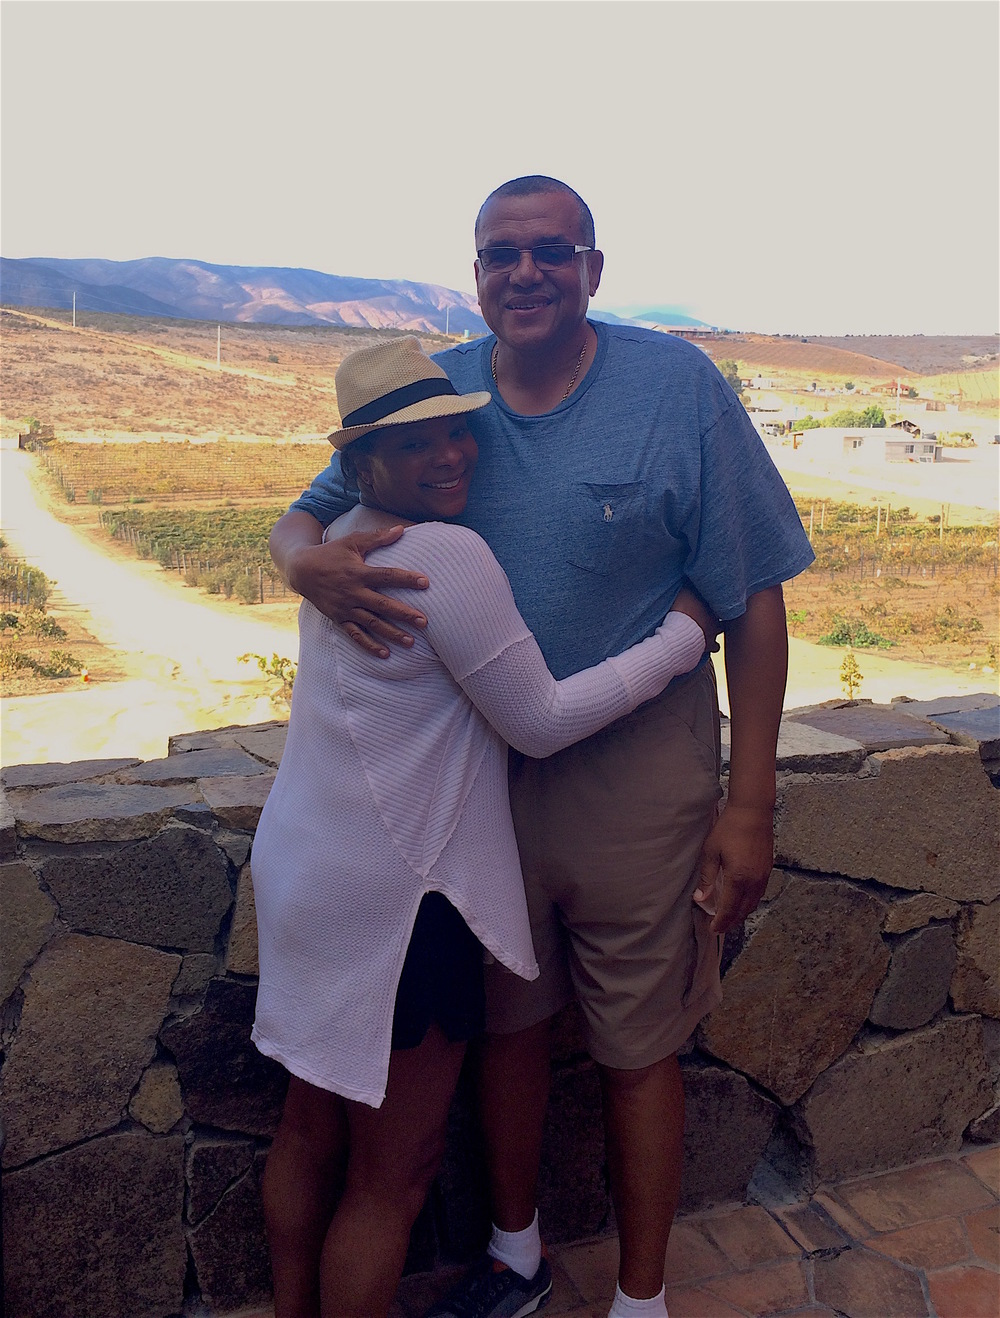 Stacy and her husband Lewis, on tour with BTK, enjoying a lovely day of wine tasting and exploring in the Valle de Guadalupe. Neither had been to Mexico before this trip, and they absolutely loved it!